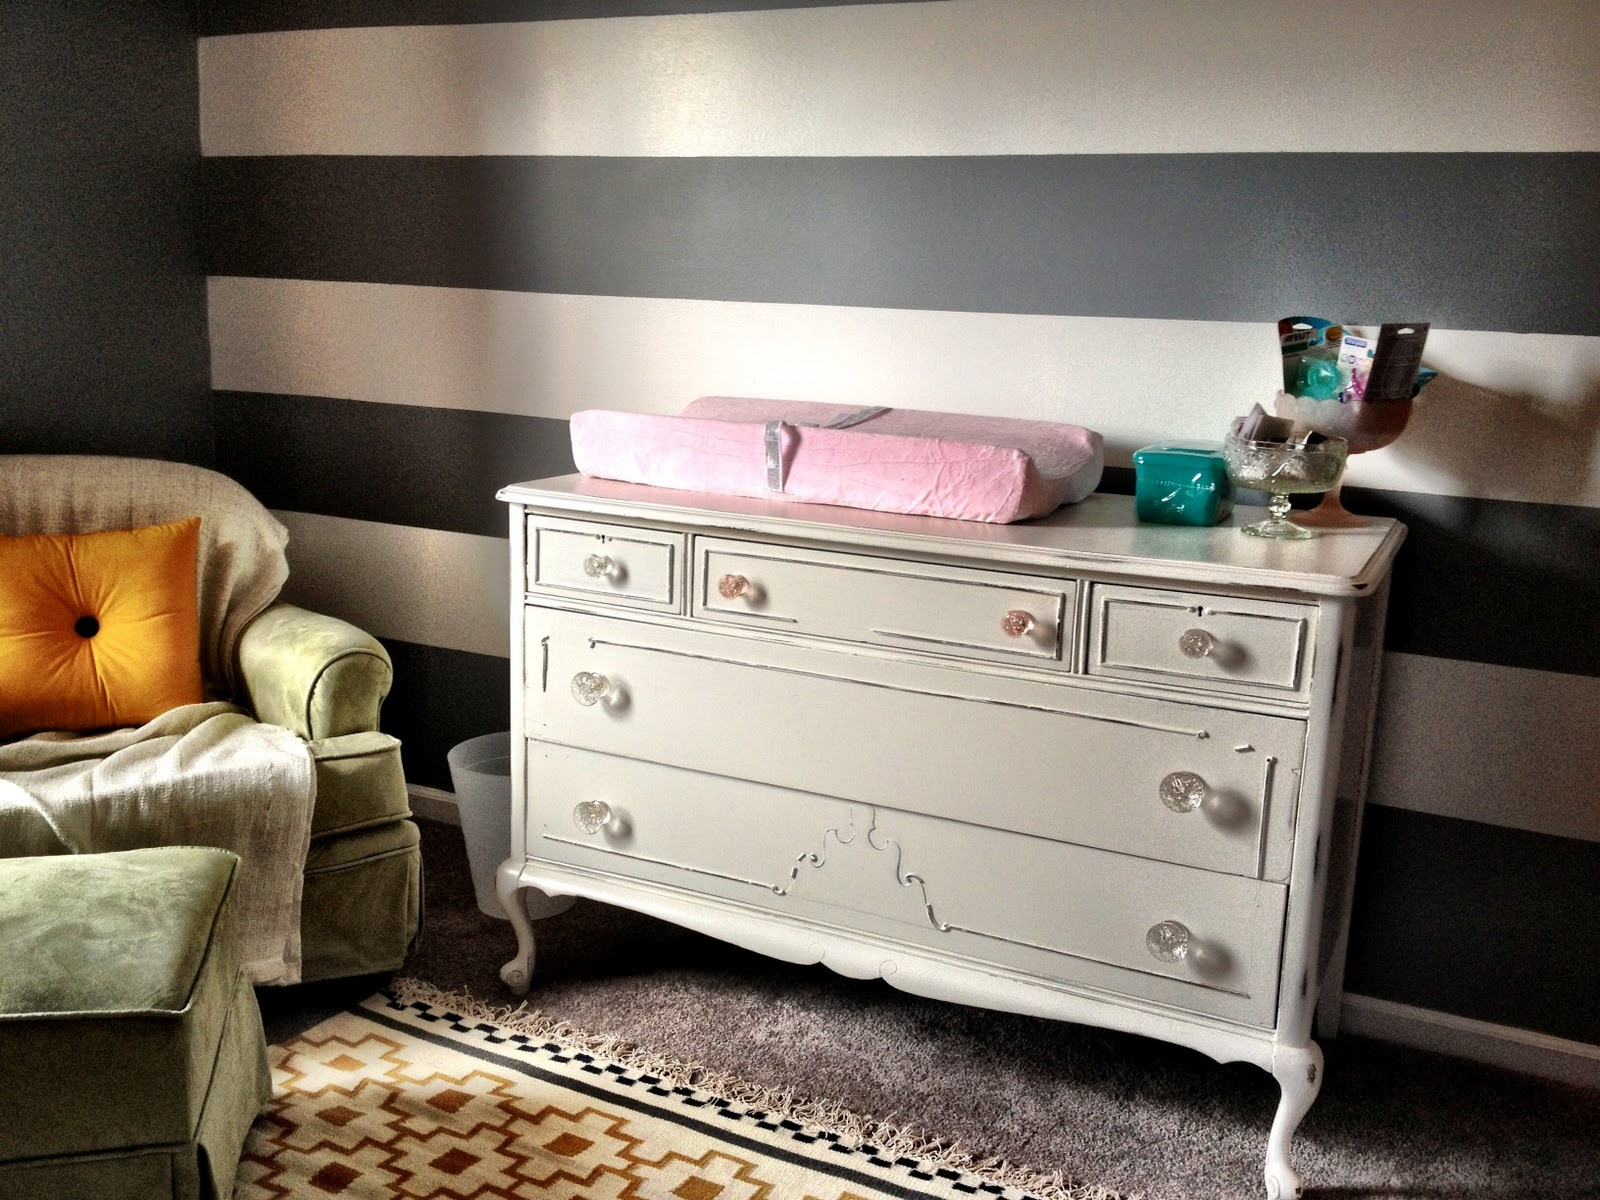 I Just Love It!!! She Painted It With White Paint And Distressed With  Different Grades Of Sandpaperu2026.Now All It Needs Is The Baby!